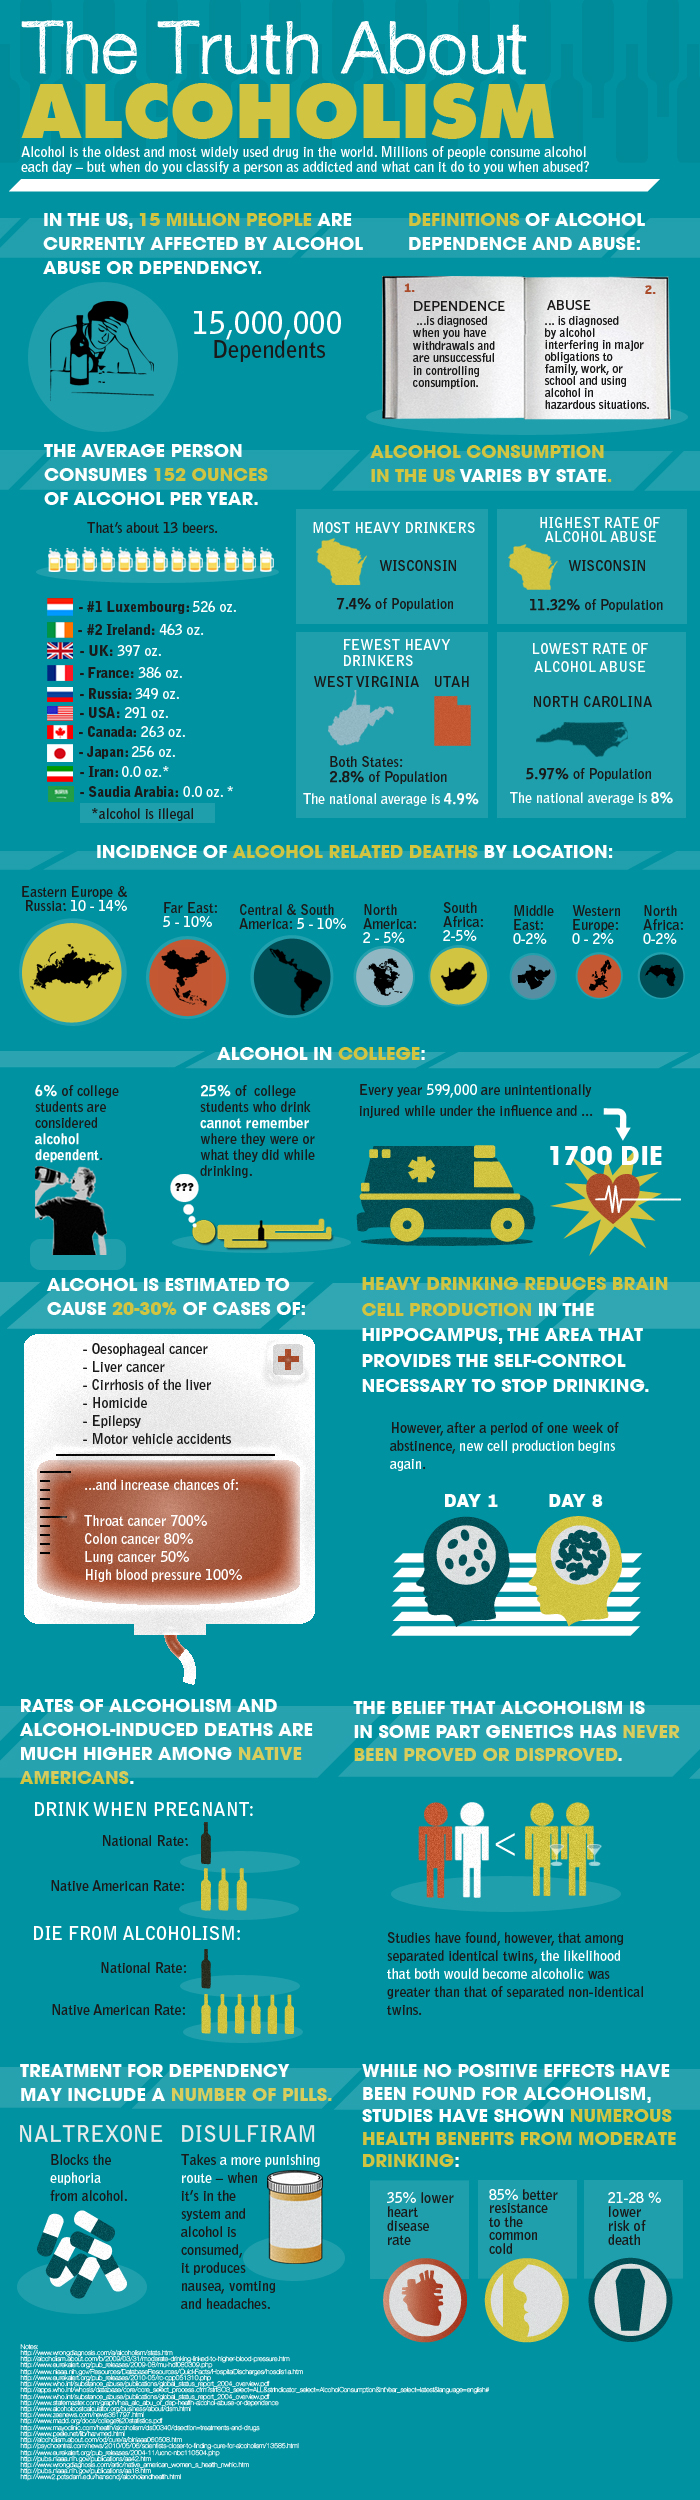 The truth about alcoholism